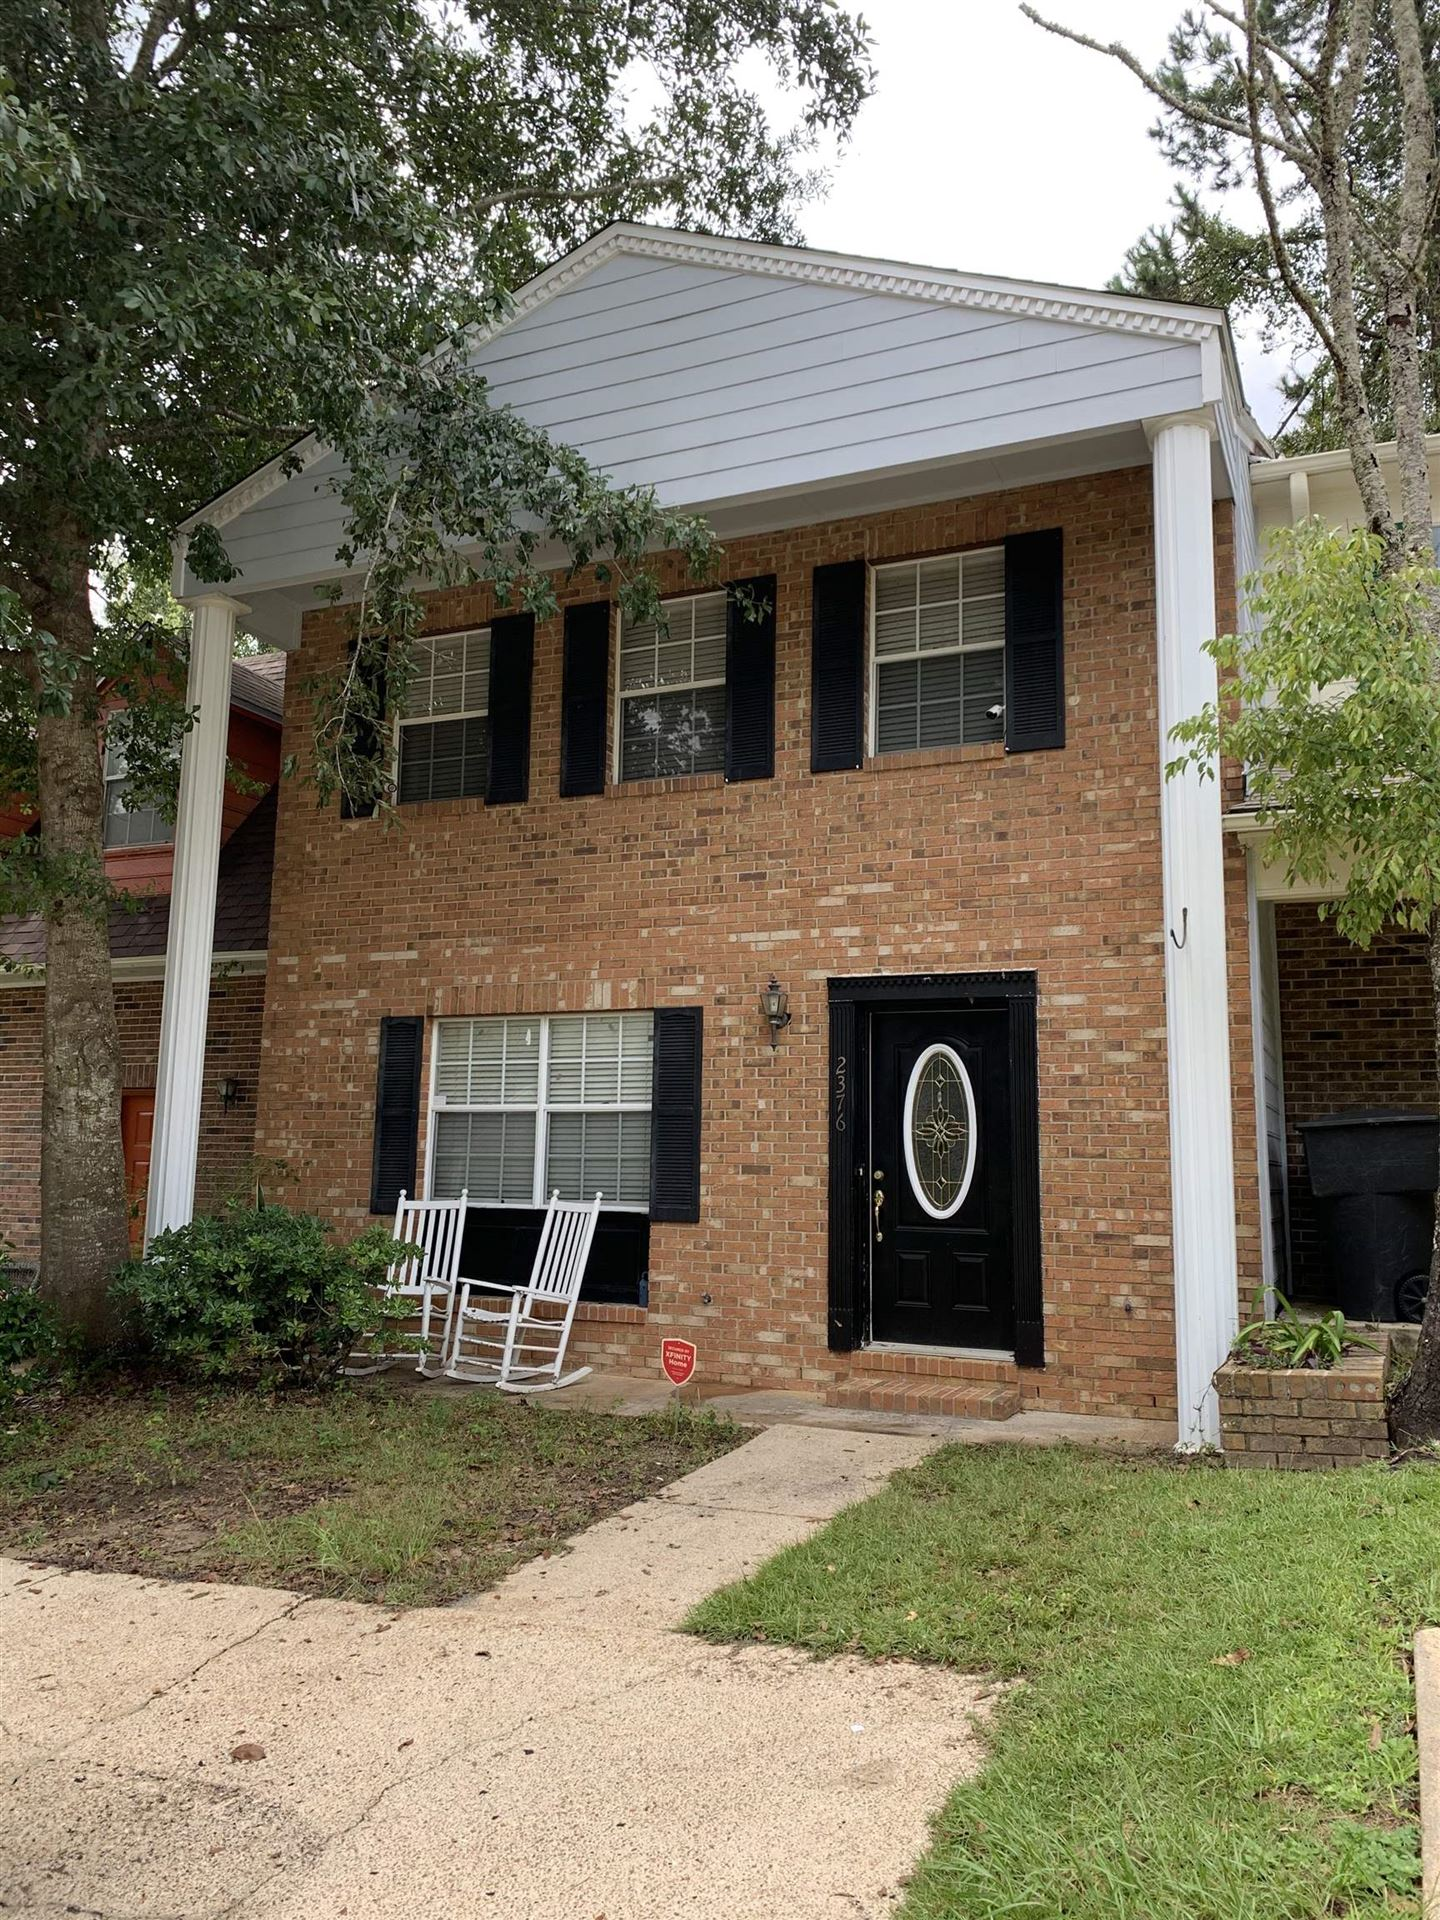 Photo of 2376 Gregory Drive, TALLAHASSEE, FL 32303 (MLS # 336882)